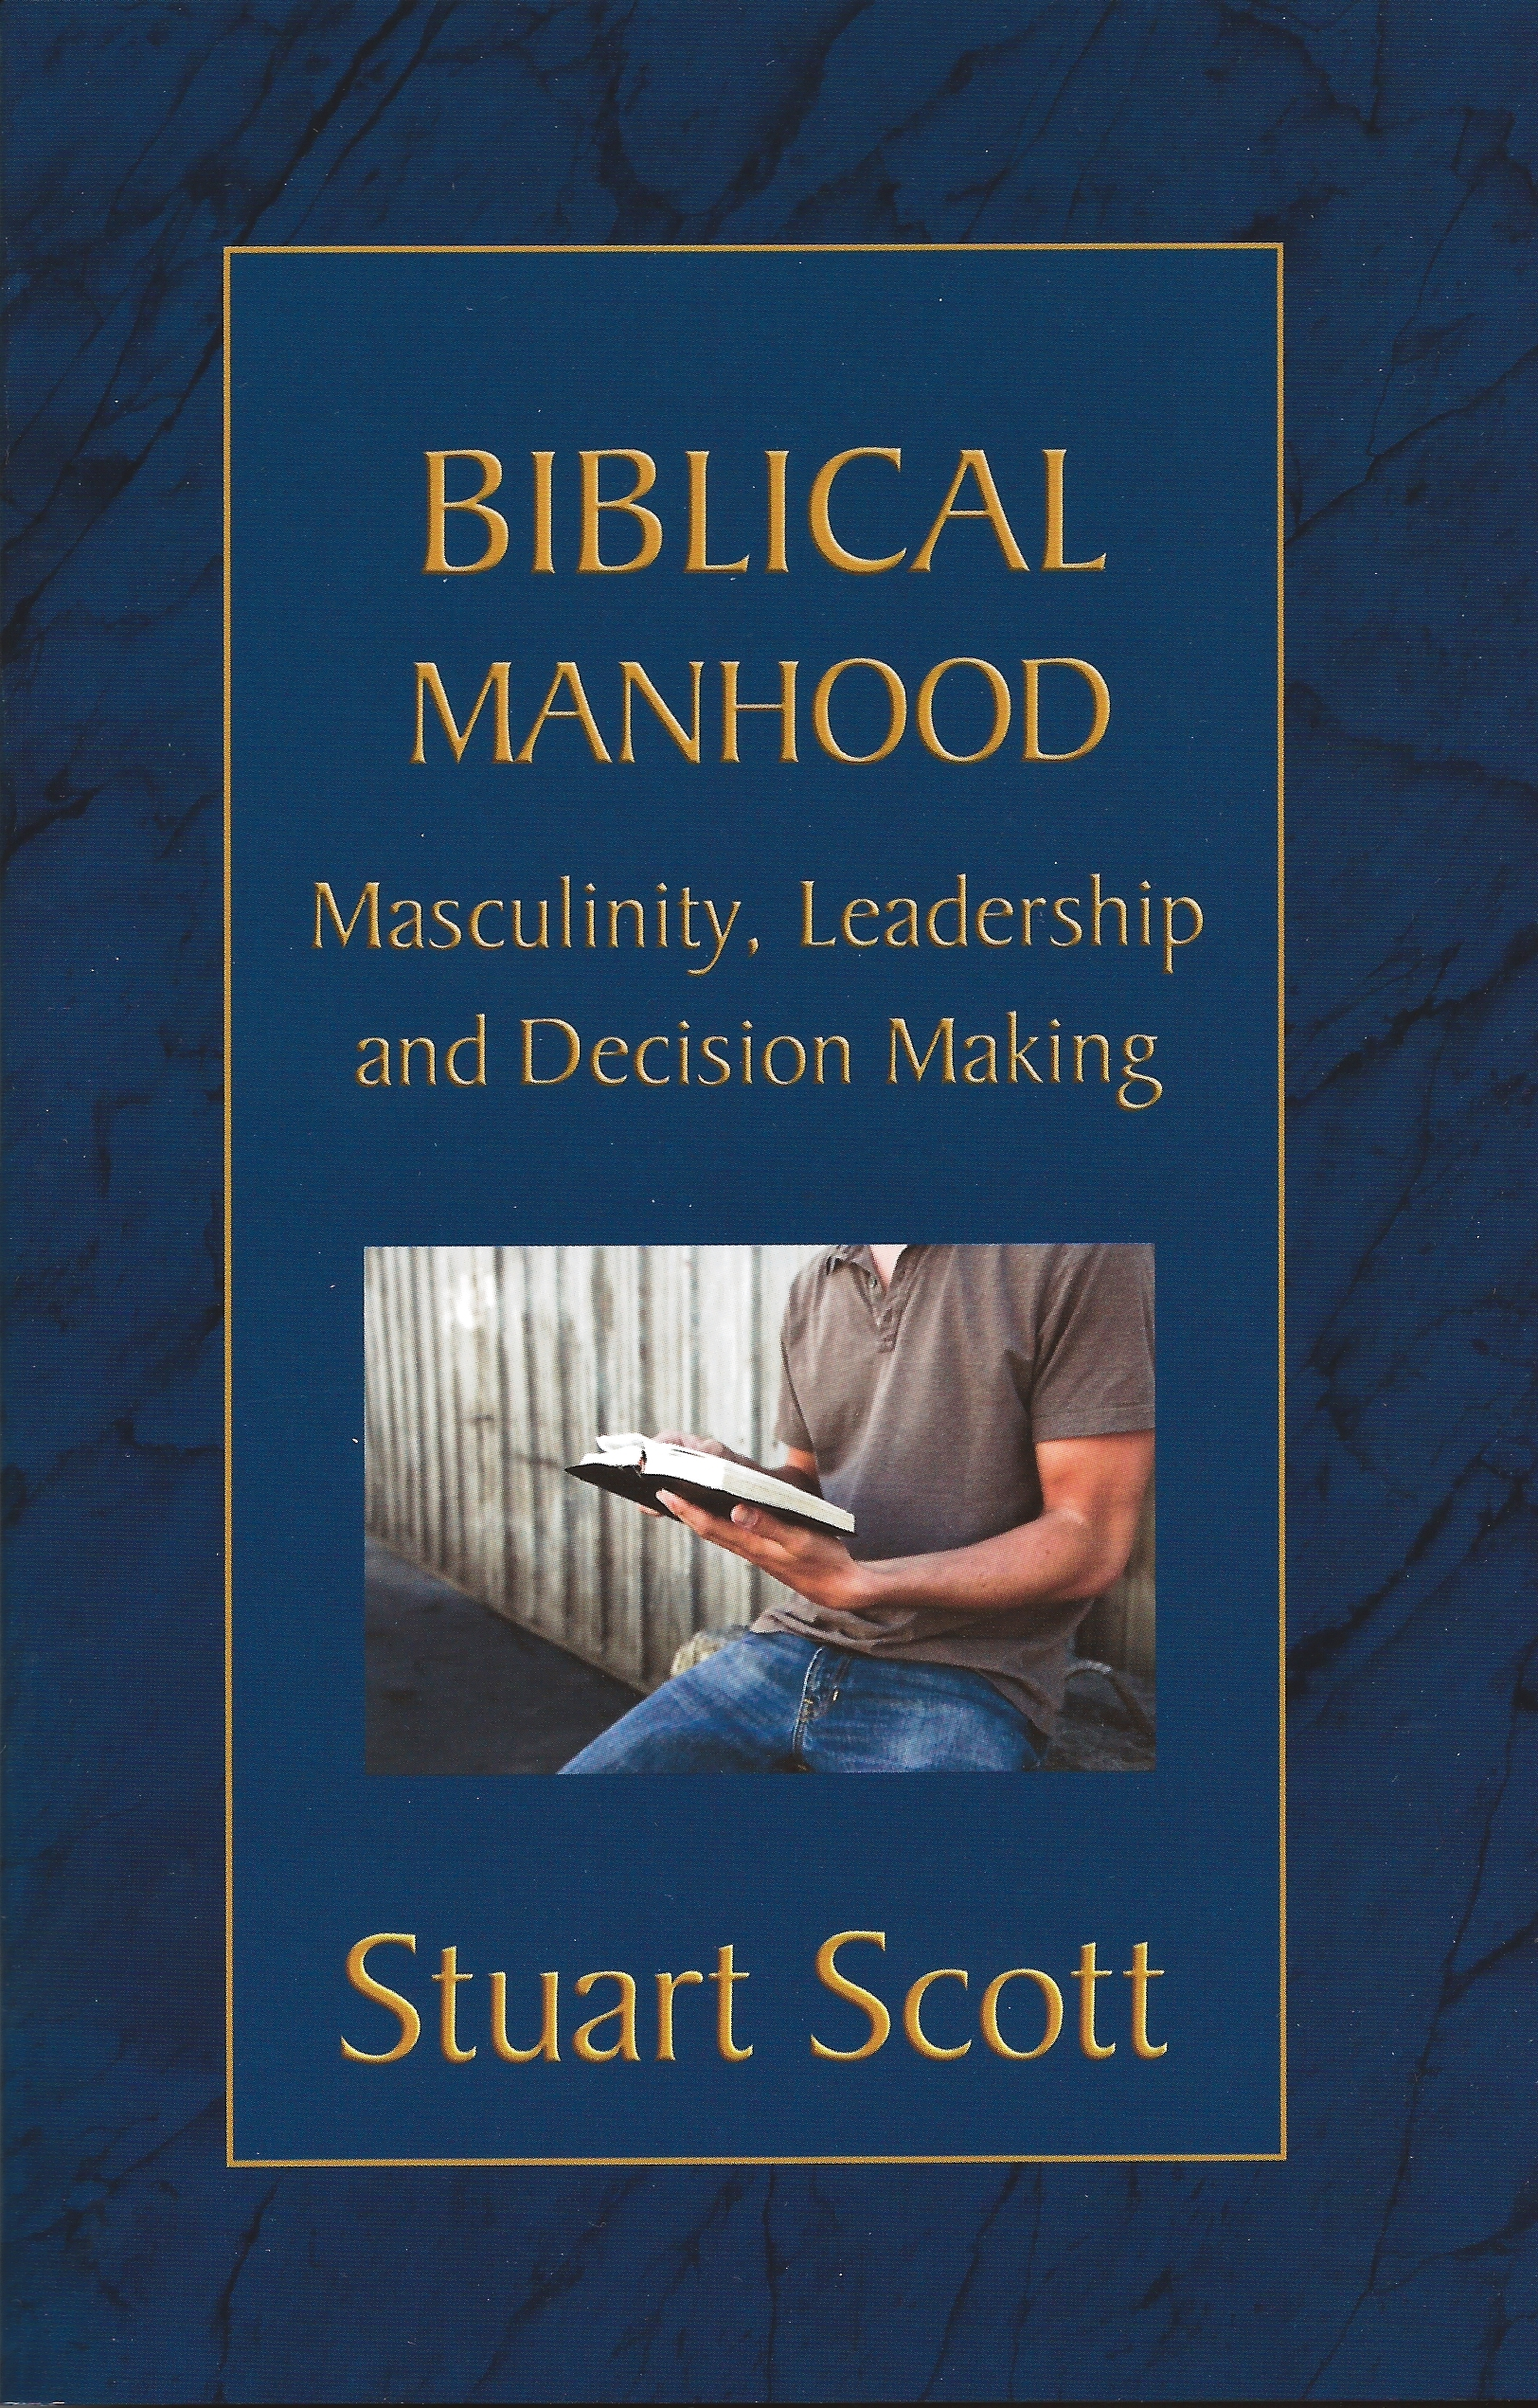 BIBLICAL MANHOOD Stuart Scott